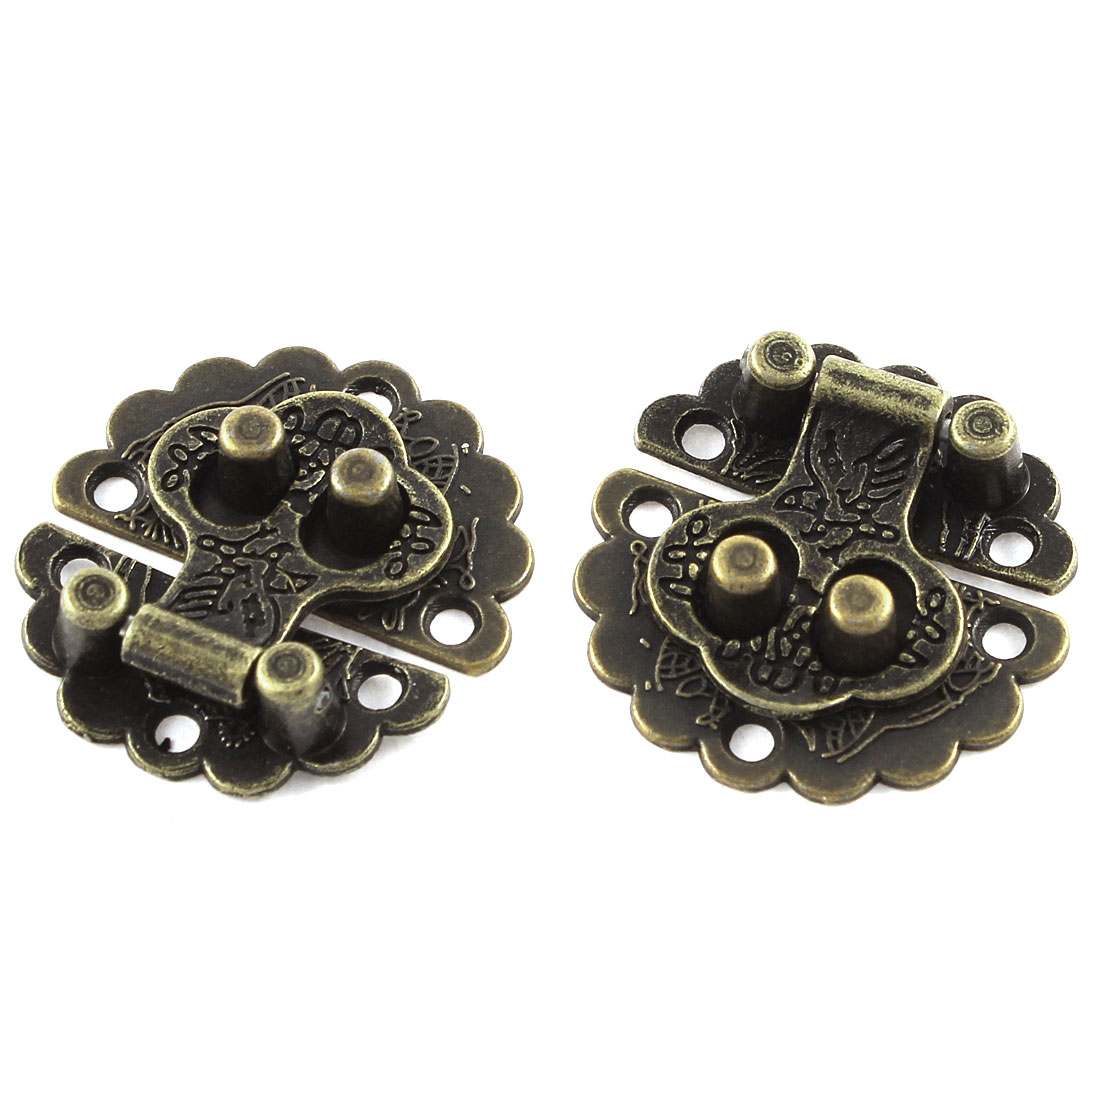 2pcs 30mmx30mm Vintage Style Flower Shape Box Suitcase Toggle Latch Buckles